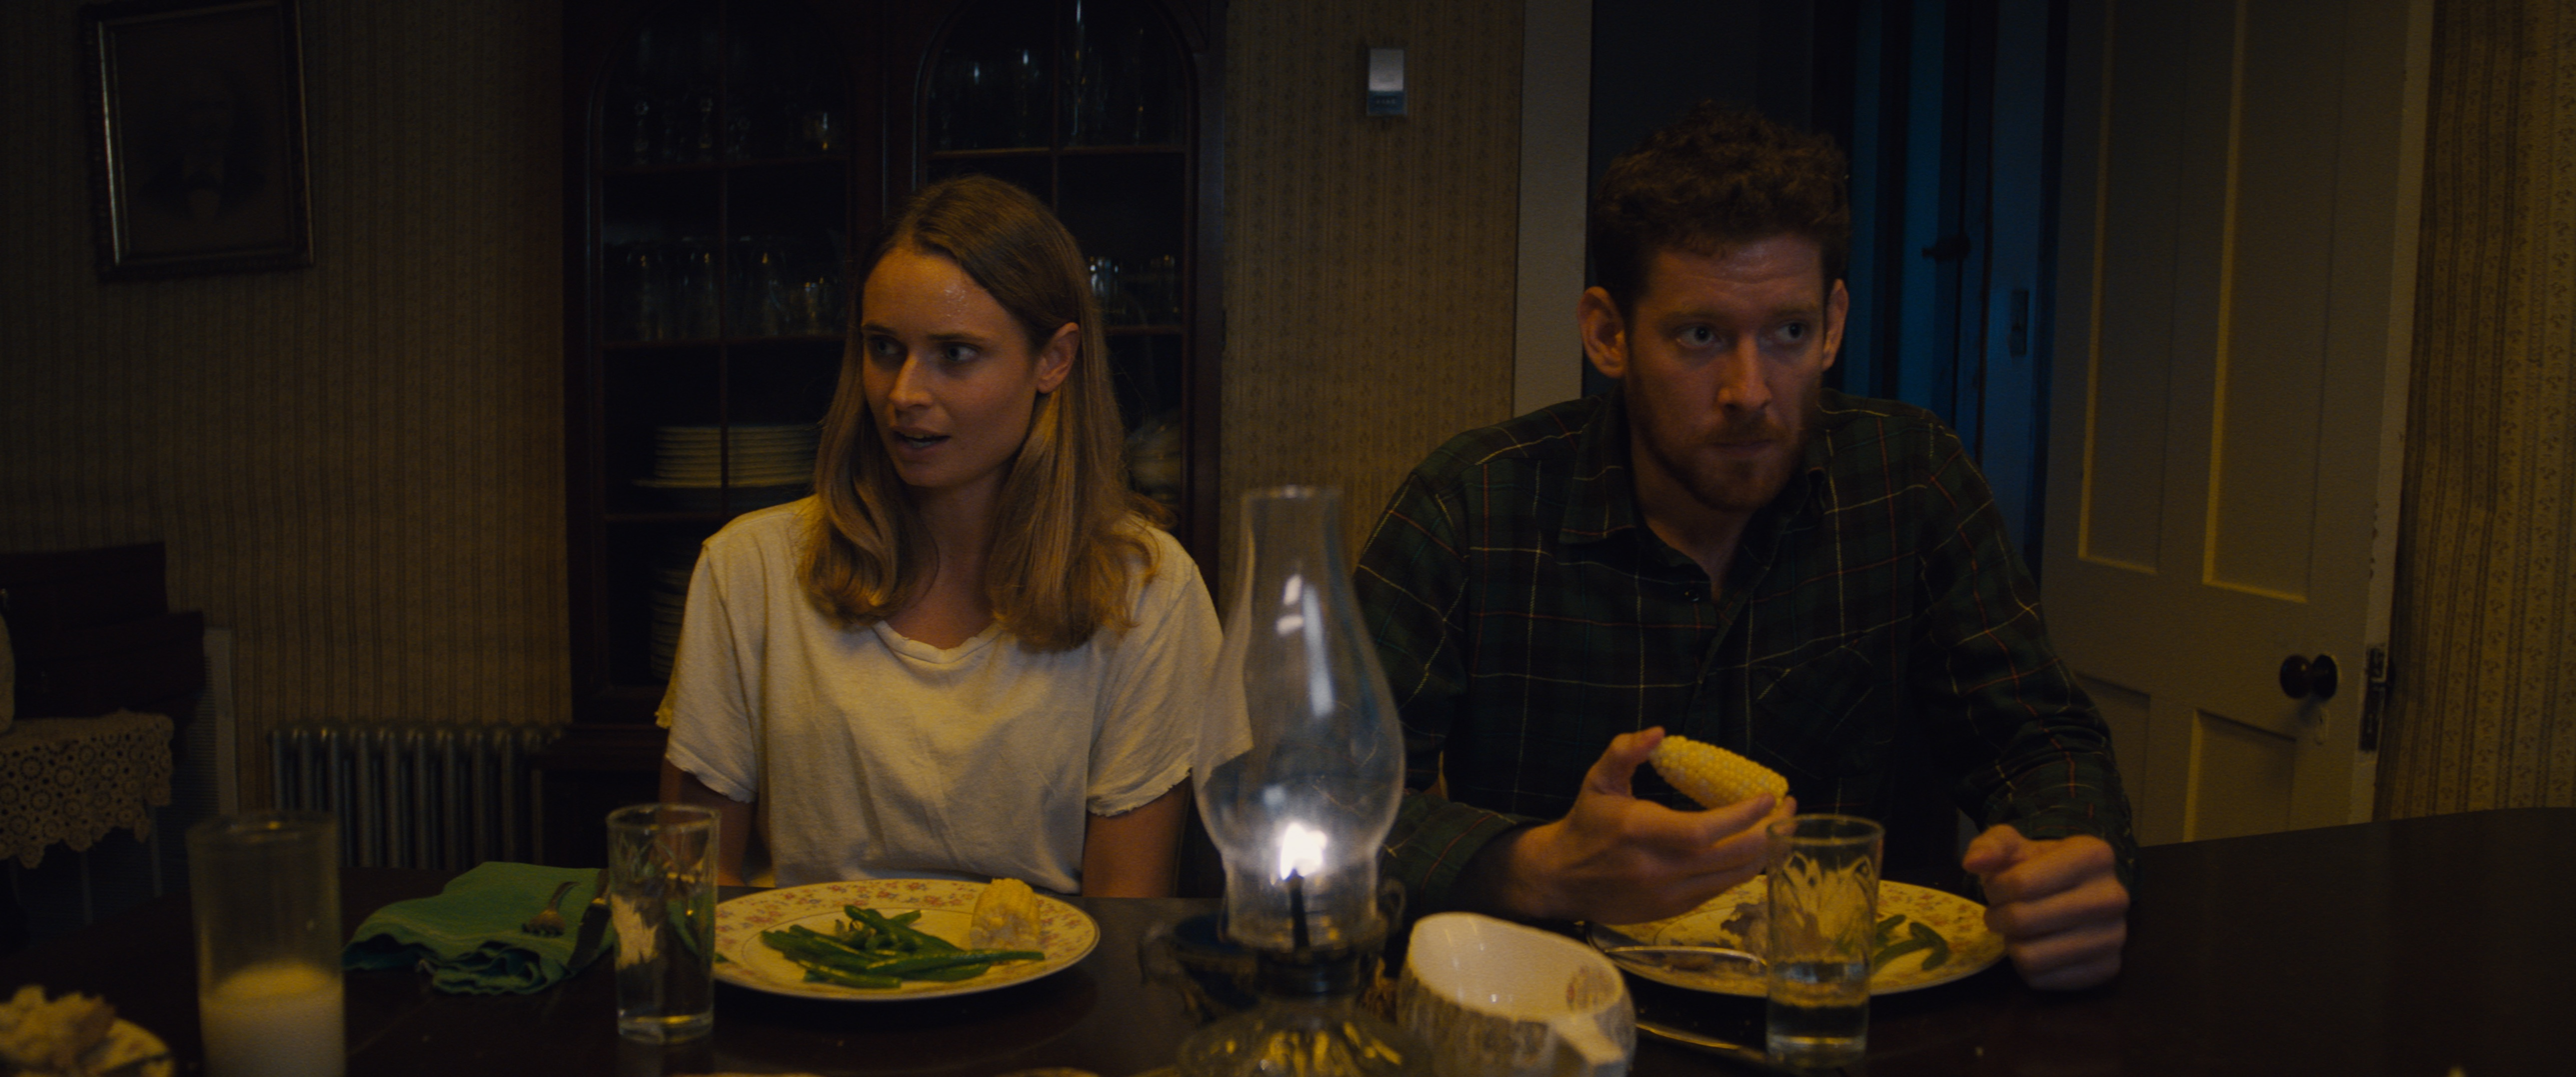 Honeydew Review: Devereux Milburn's Arthouse Horror Movie | IndieWire